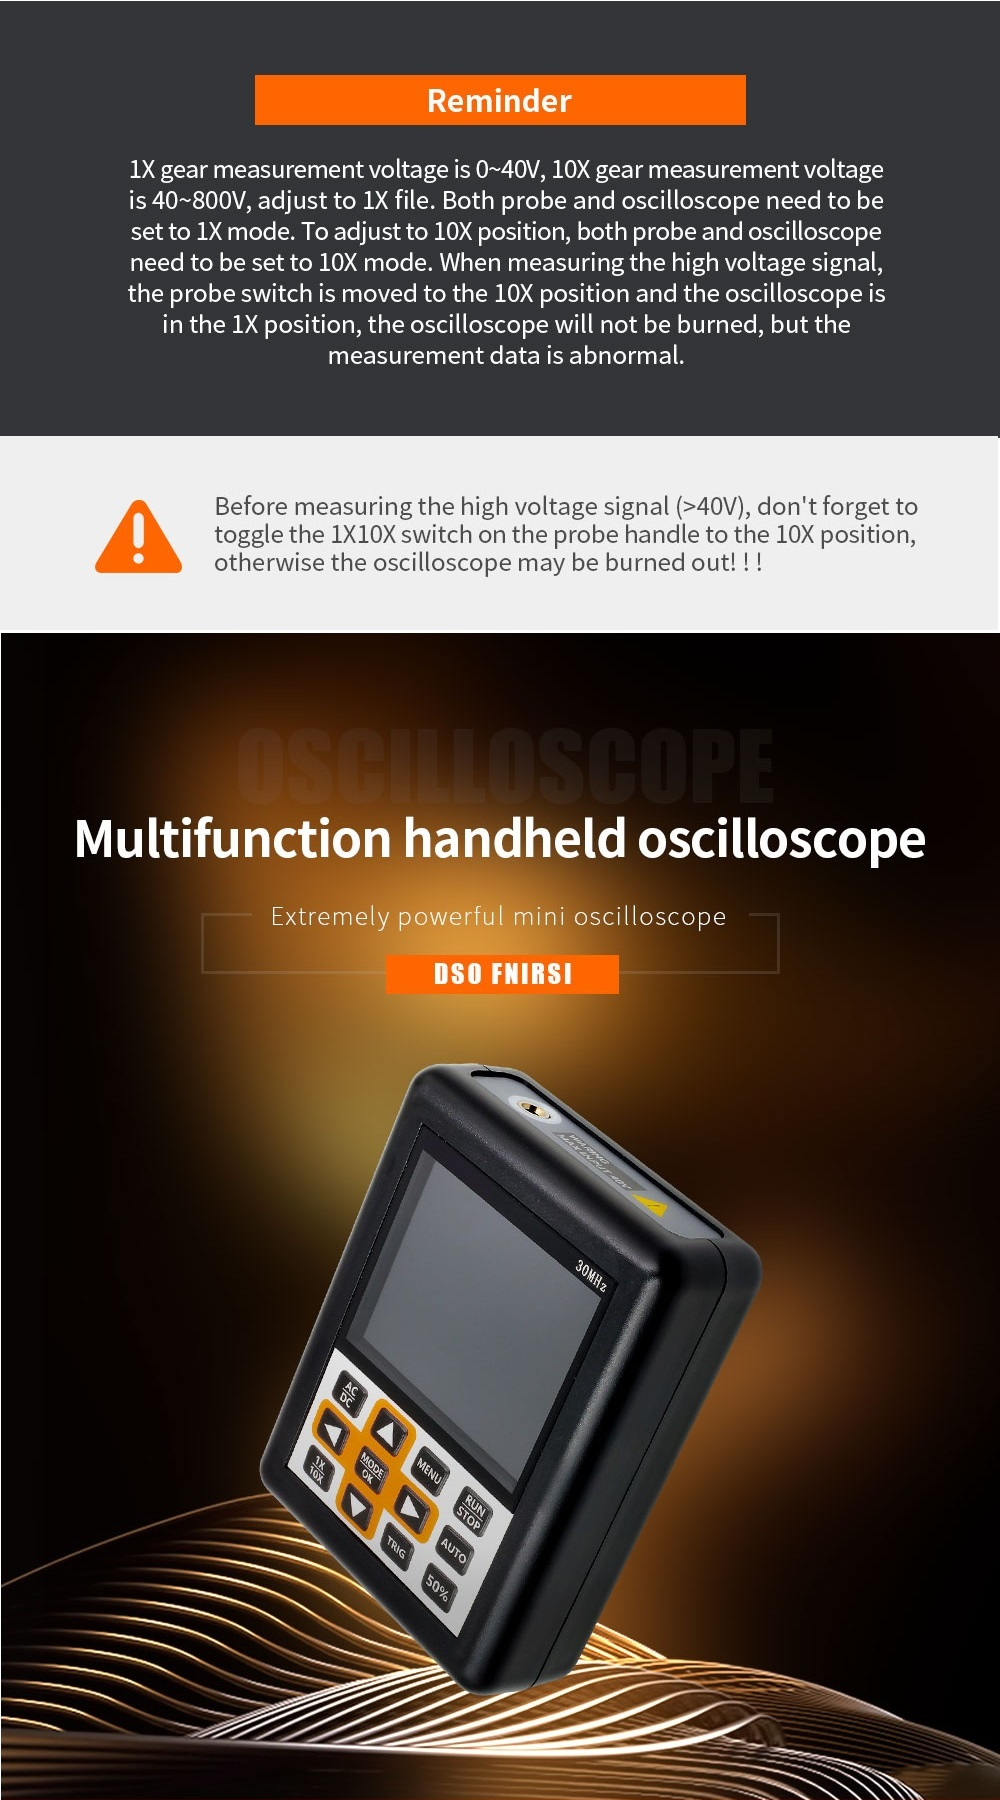 DSO338 Handheld Oscilloscope 30MHz Bandwidth 200M Sampling Rate 2.4 Inch IPS Screen 320*240 Resolution Technology Built-in 64M Storage  Built-in 3000mah Lithium Battery 33